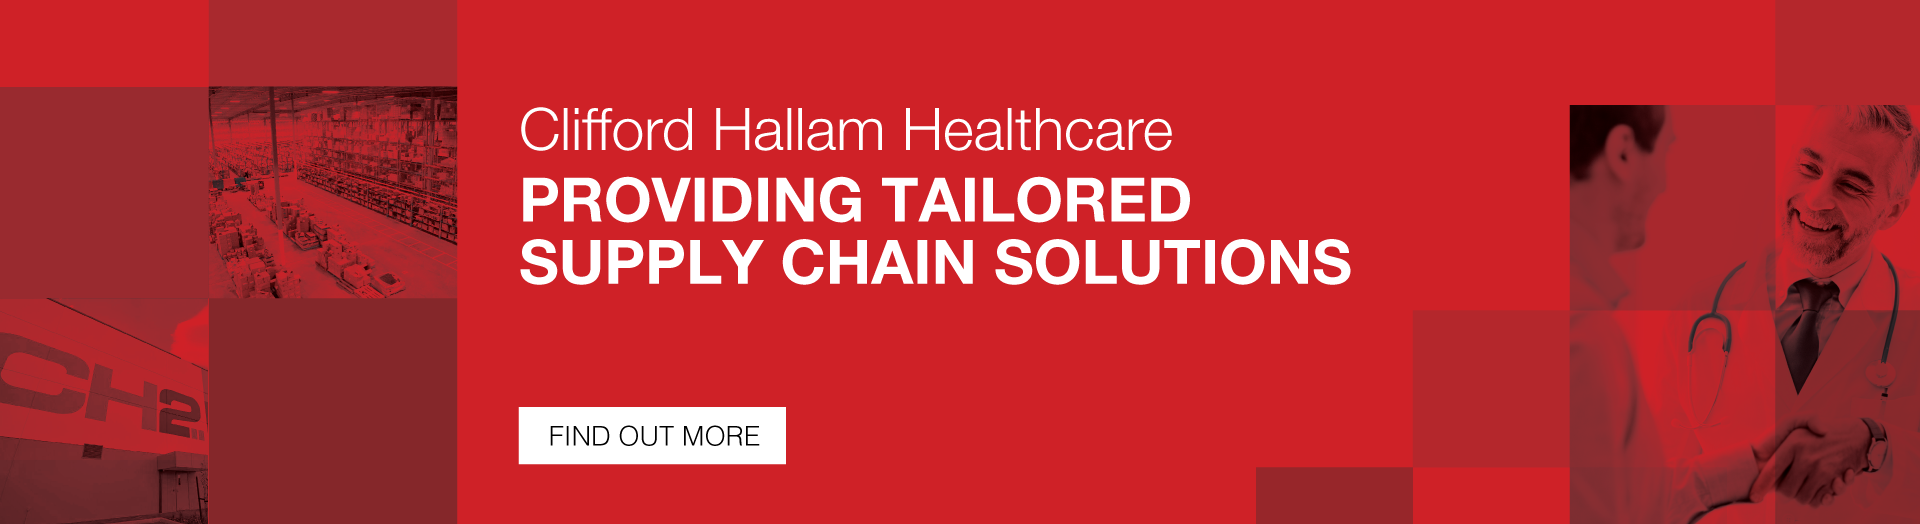 Clifford Hallam Healthcare - Providing tailored supply chain solutions